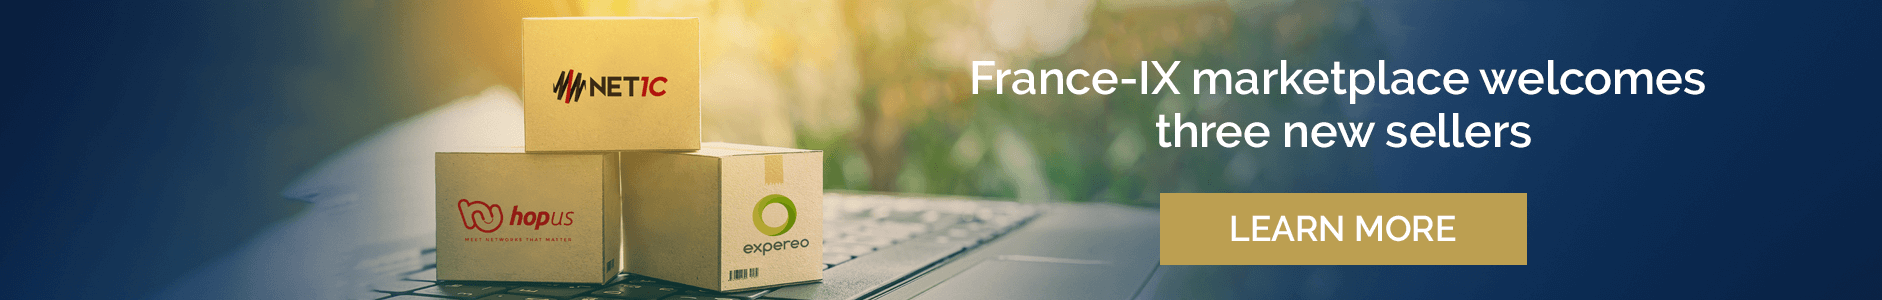 France-IX marketplace welcomes three new sellers